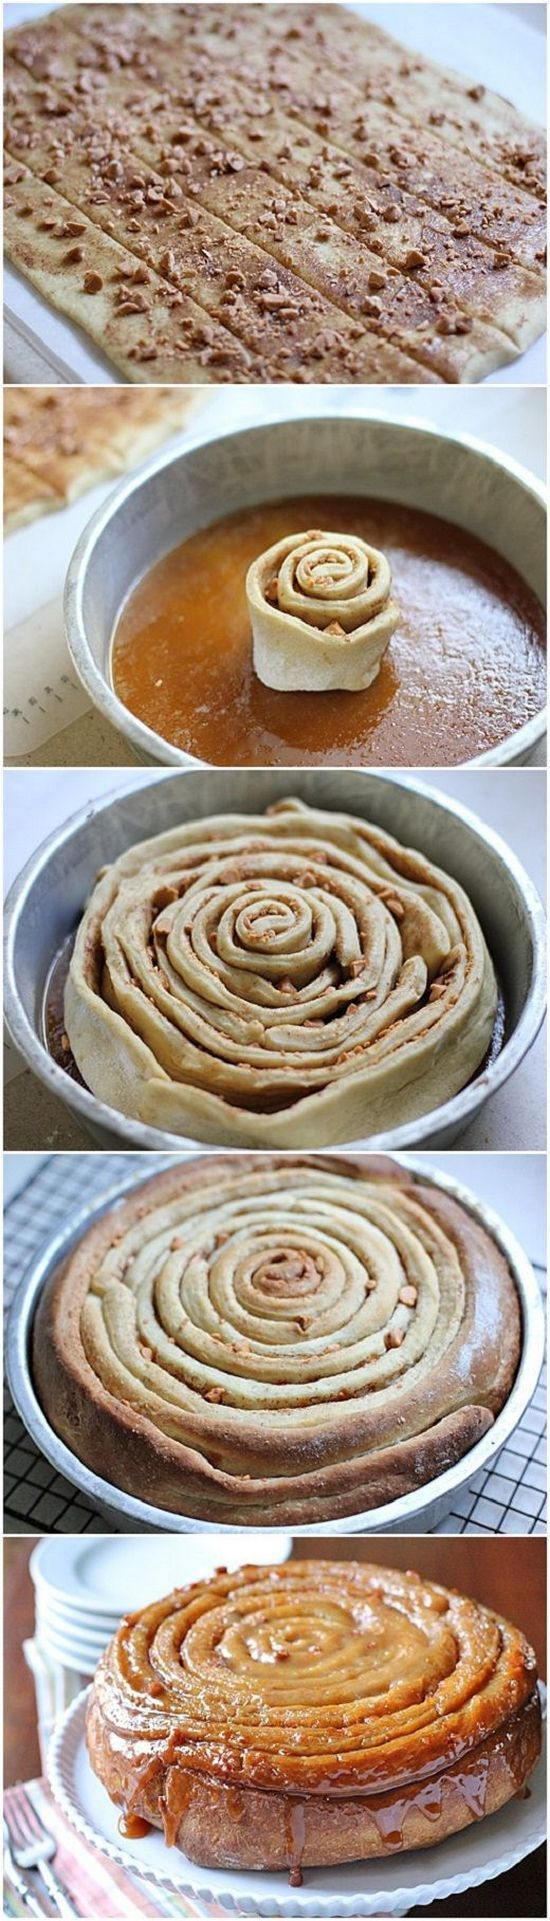 Butterscotch Spiral Coffee Cake….looks like its made with canned breadsticks!